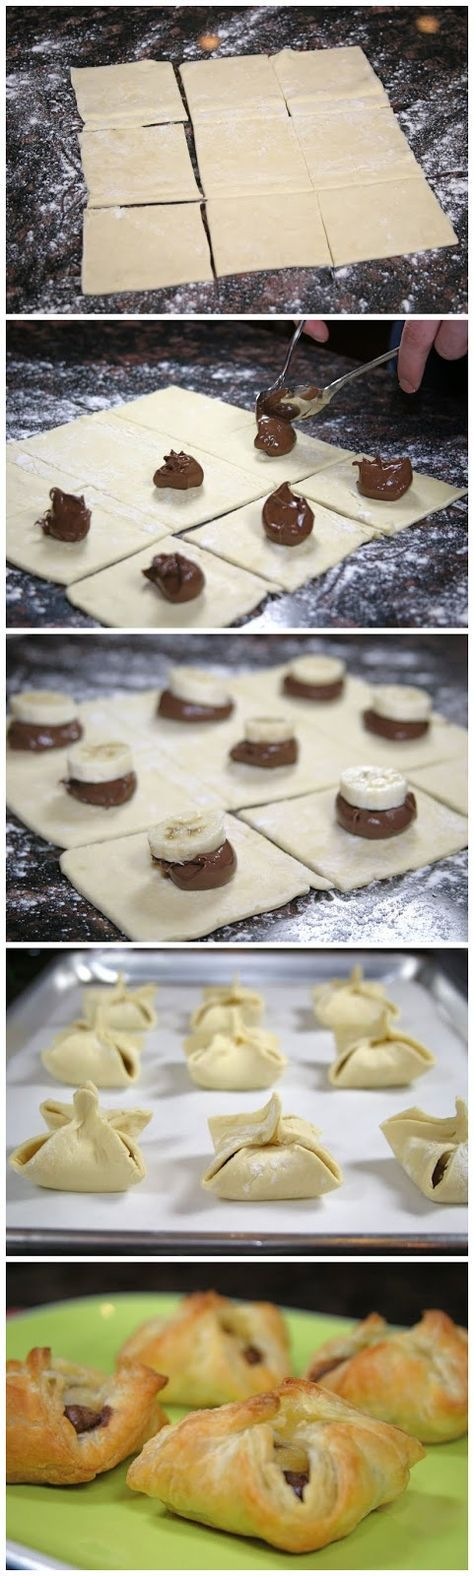 Nutella and Banana Pastry Purses - Askmefood